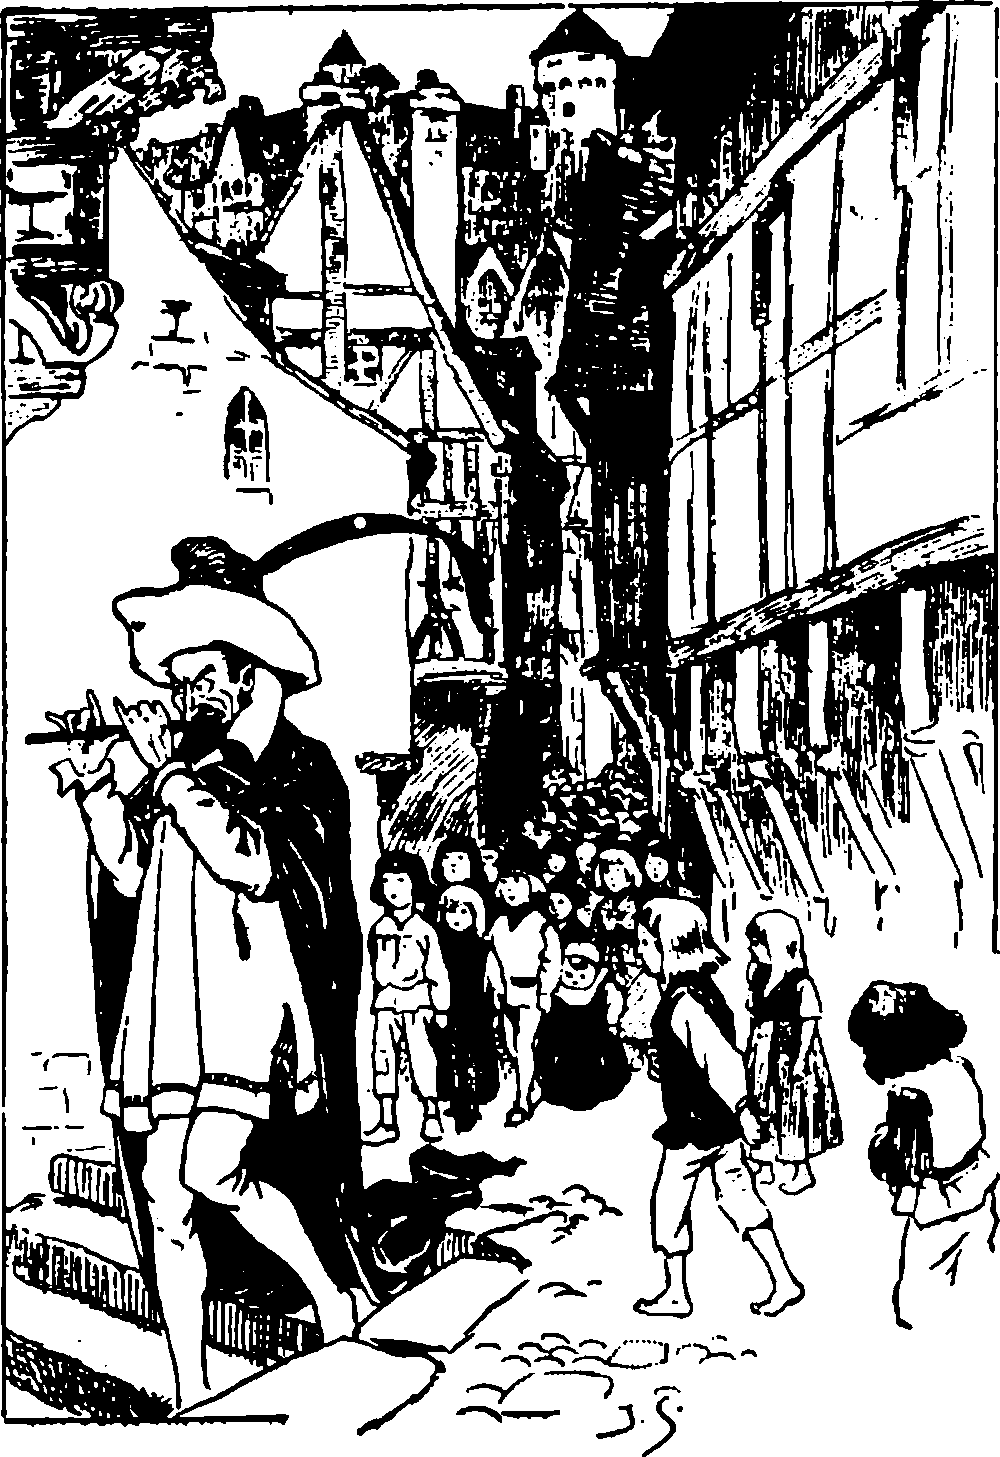 From Deutsches Sprachbuch (Masson)